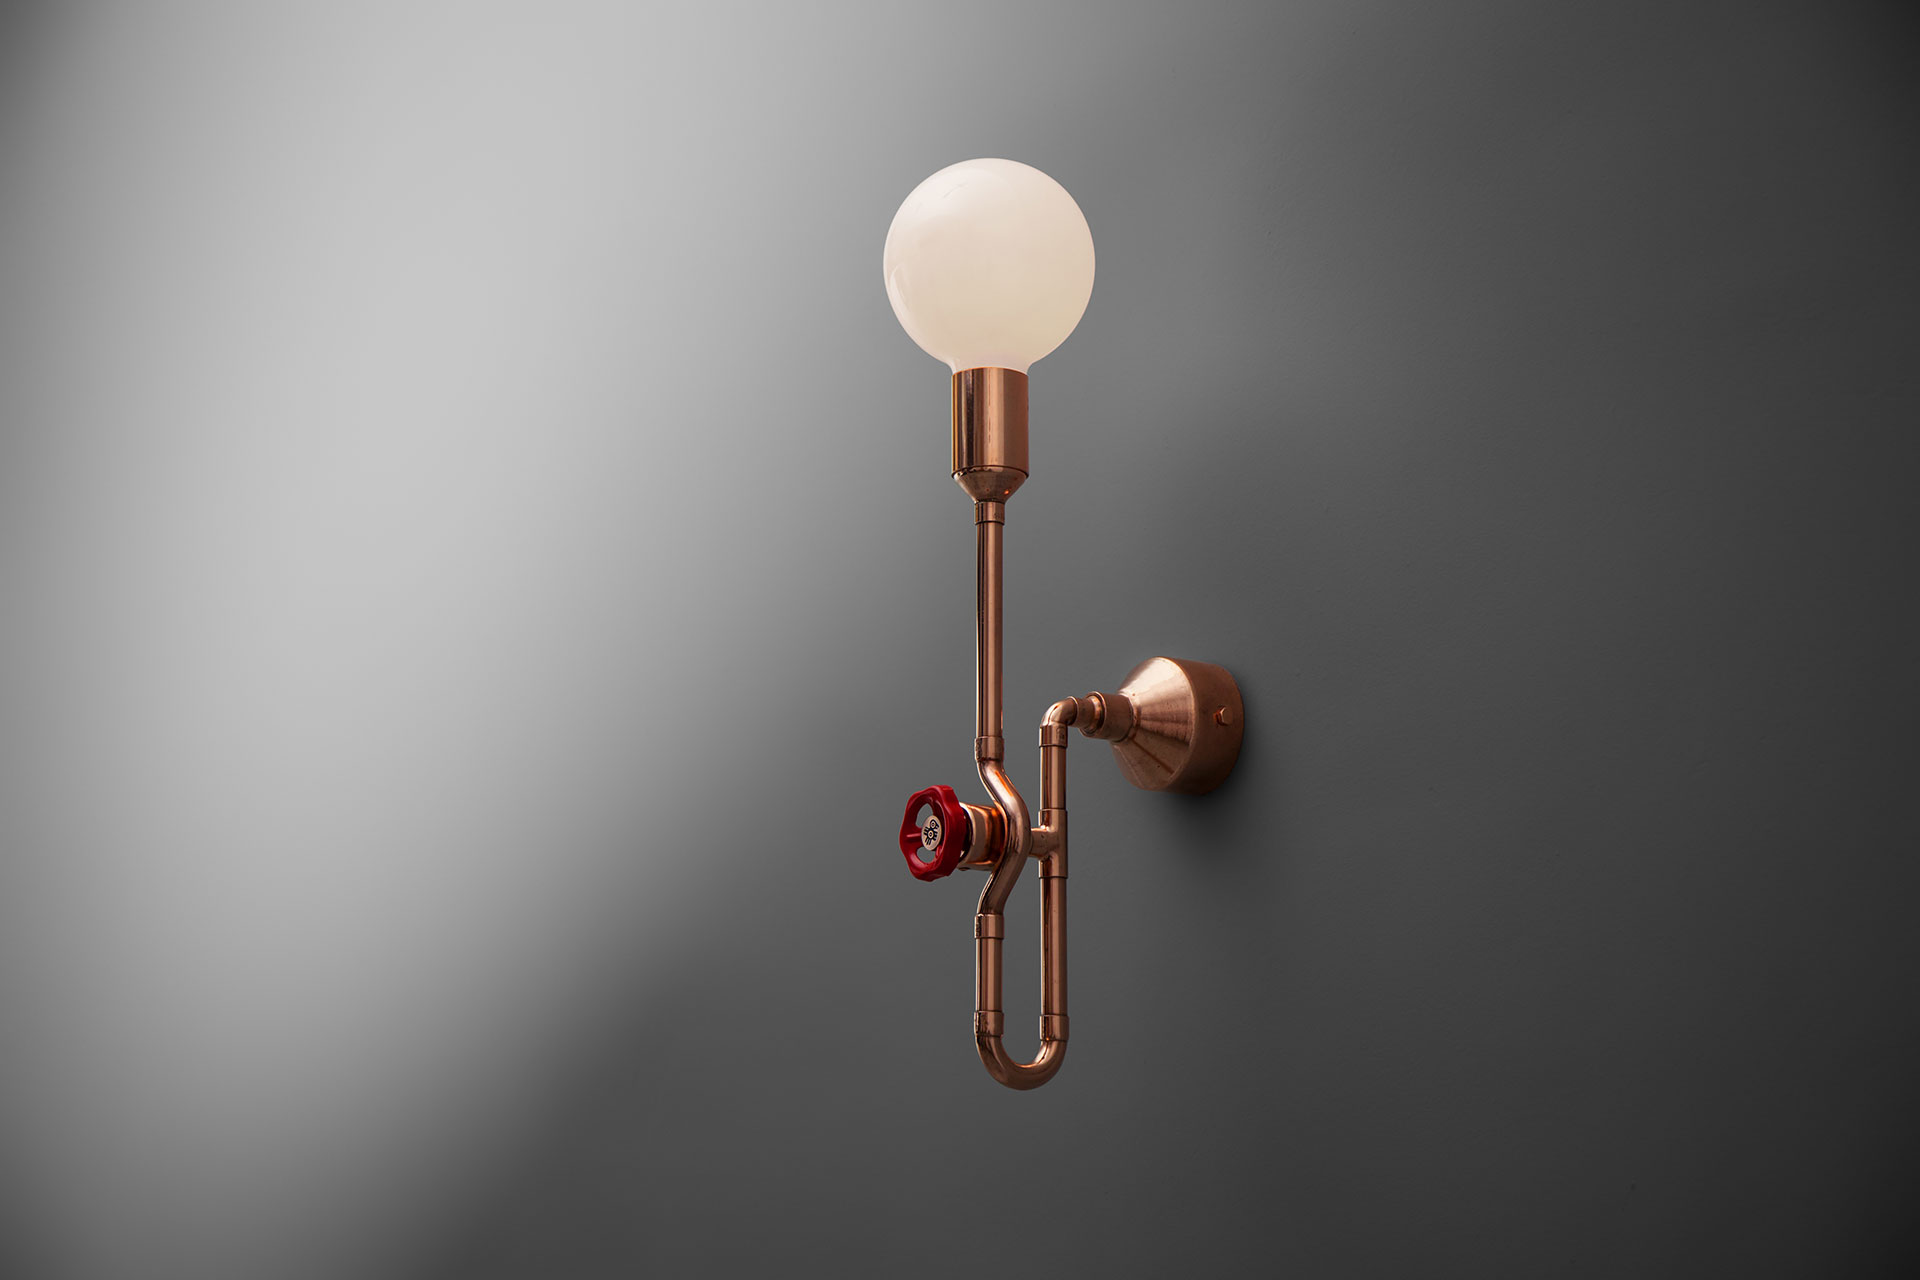 Cool dimmable sconce in copper or brass inspired by industrial design